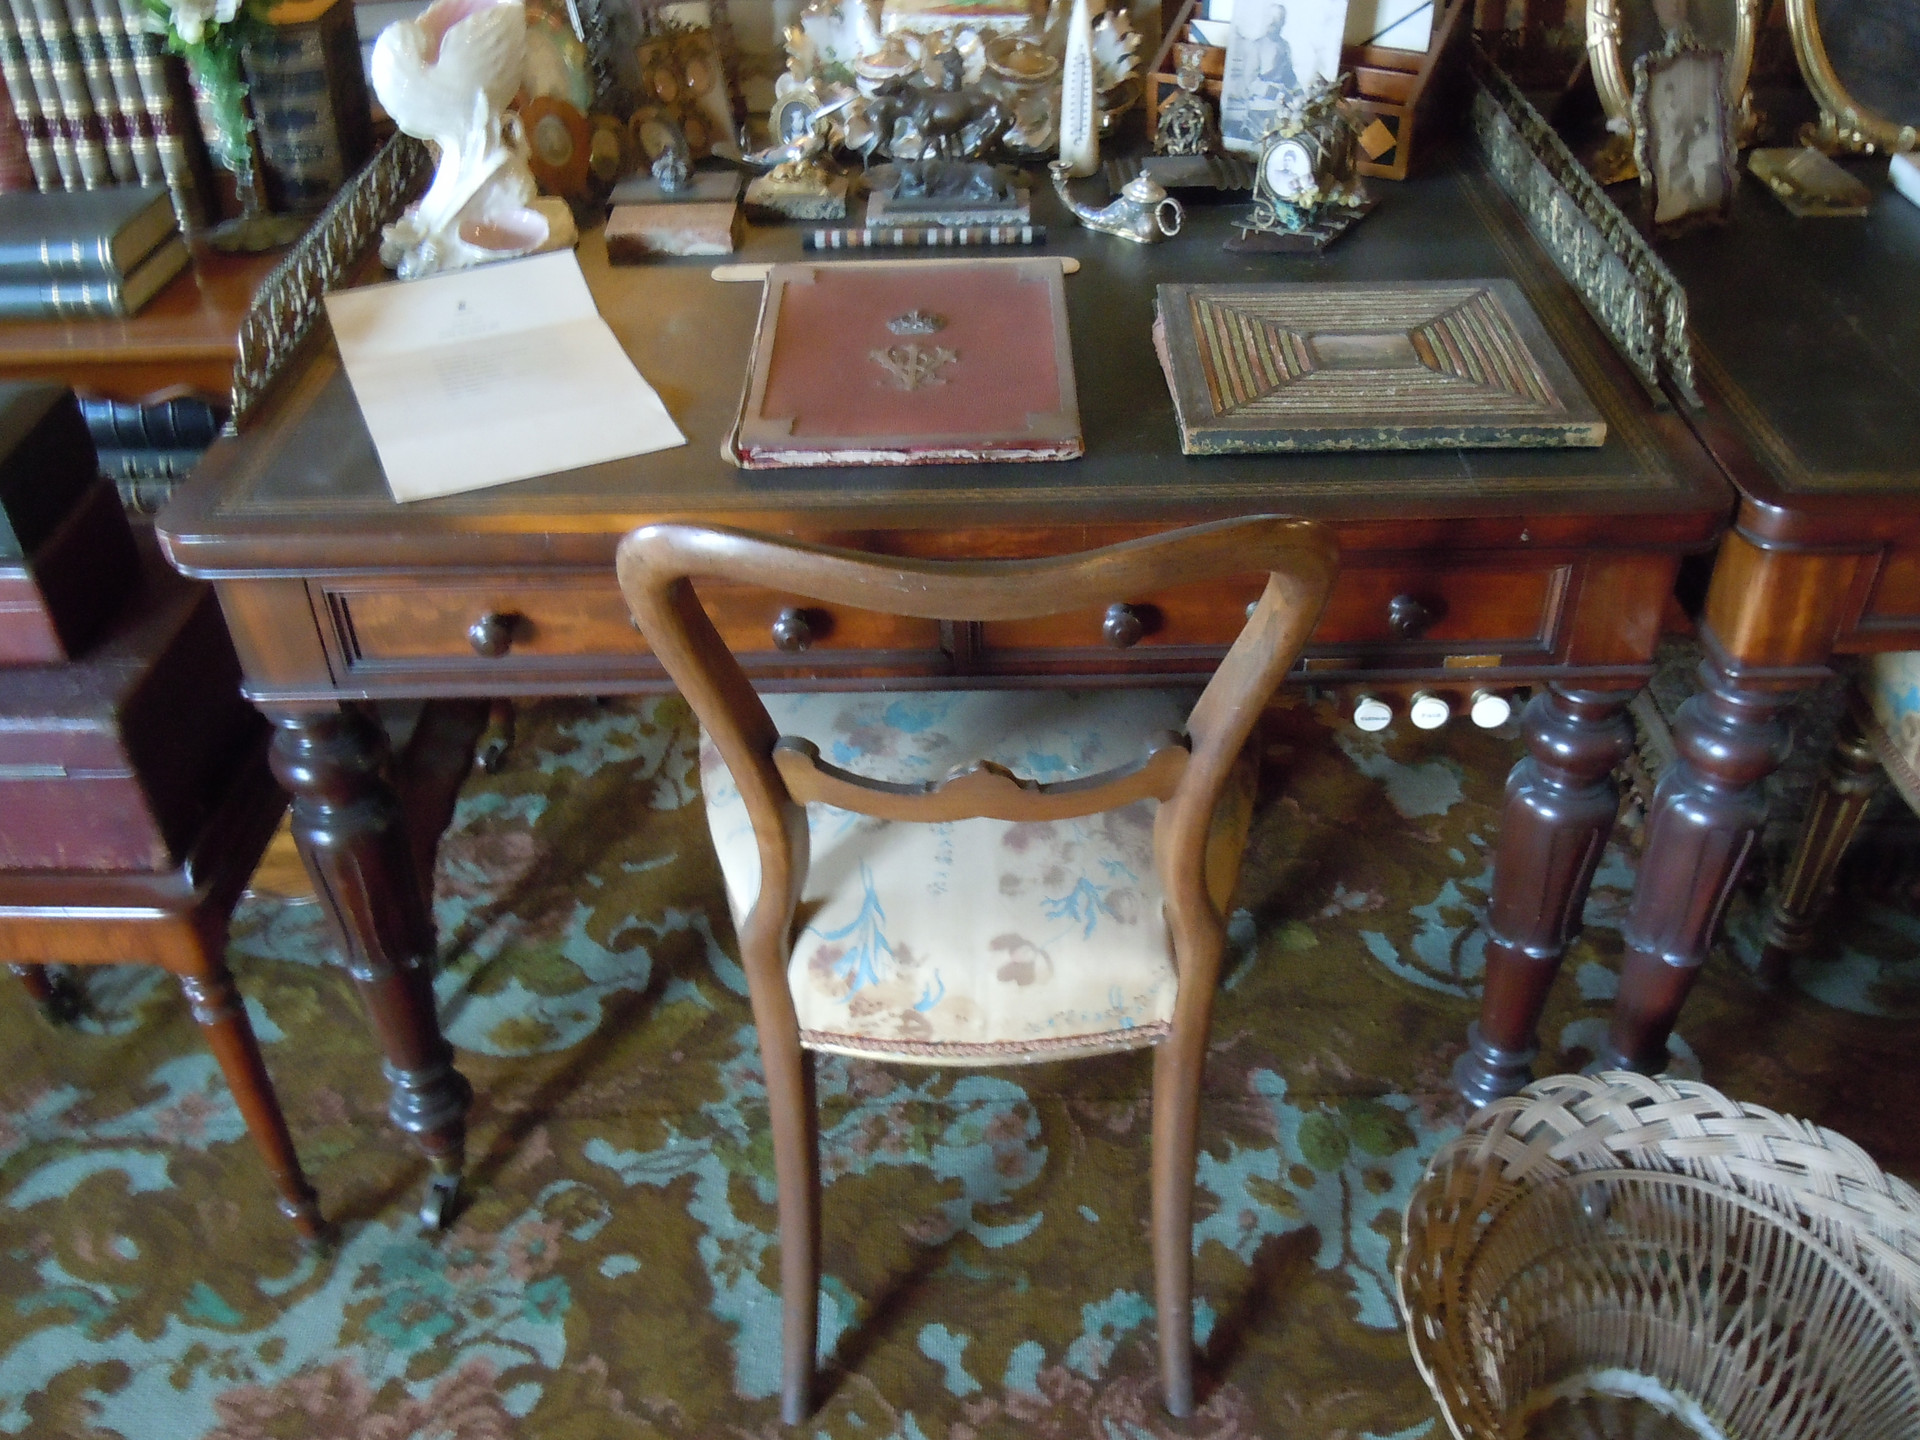 Queen Victoria's writing desk at Osborne House on the Isle of Wight